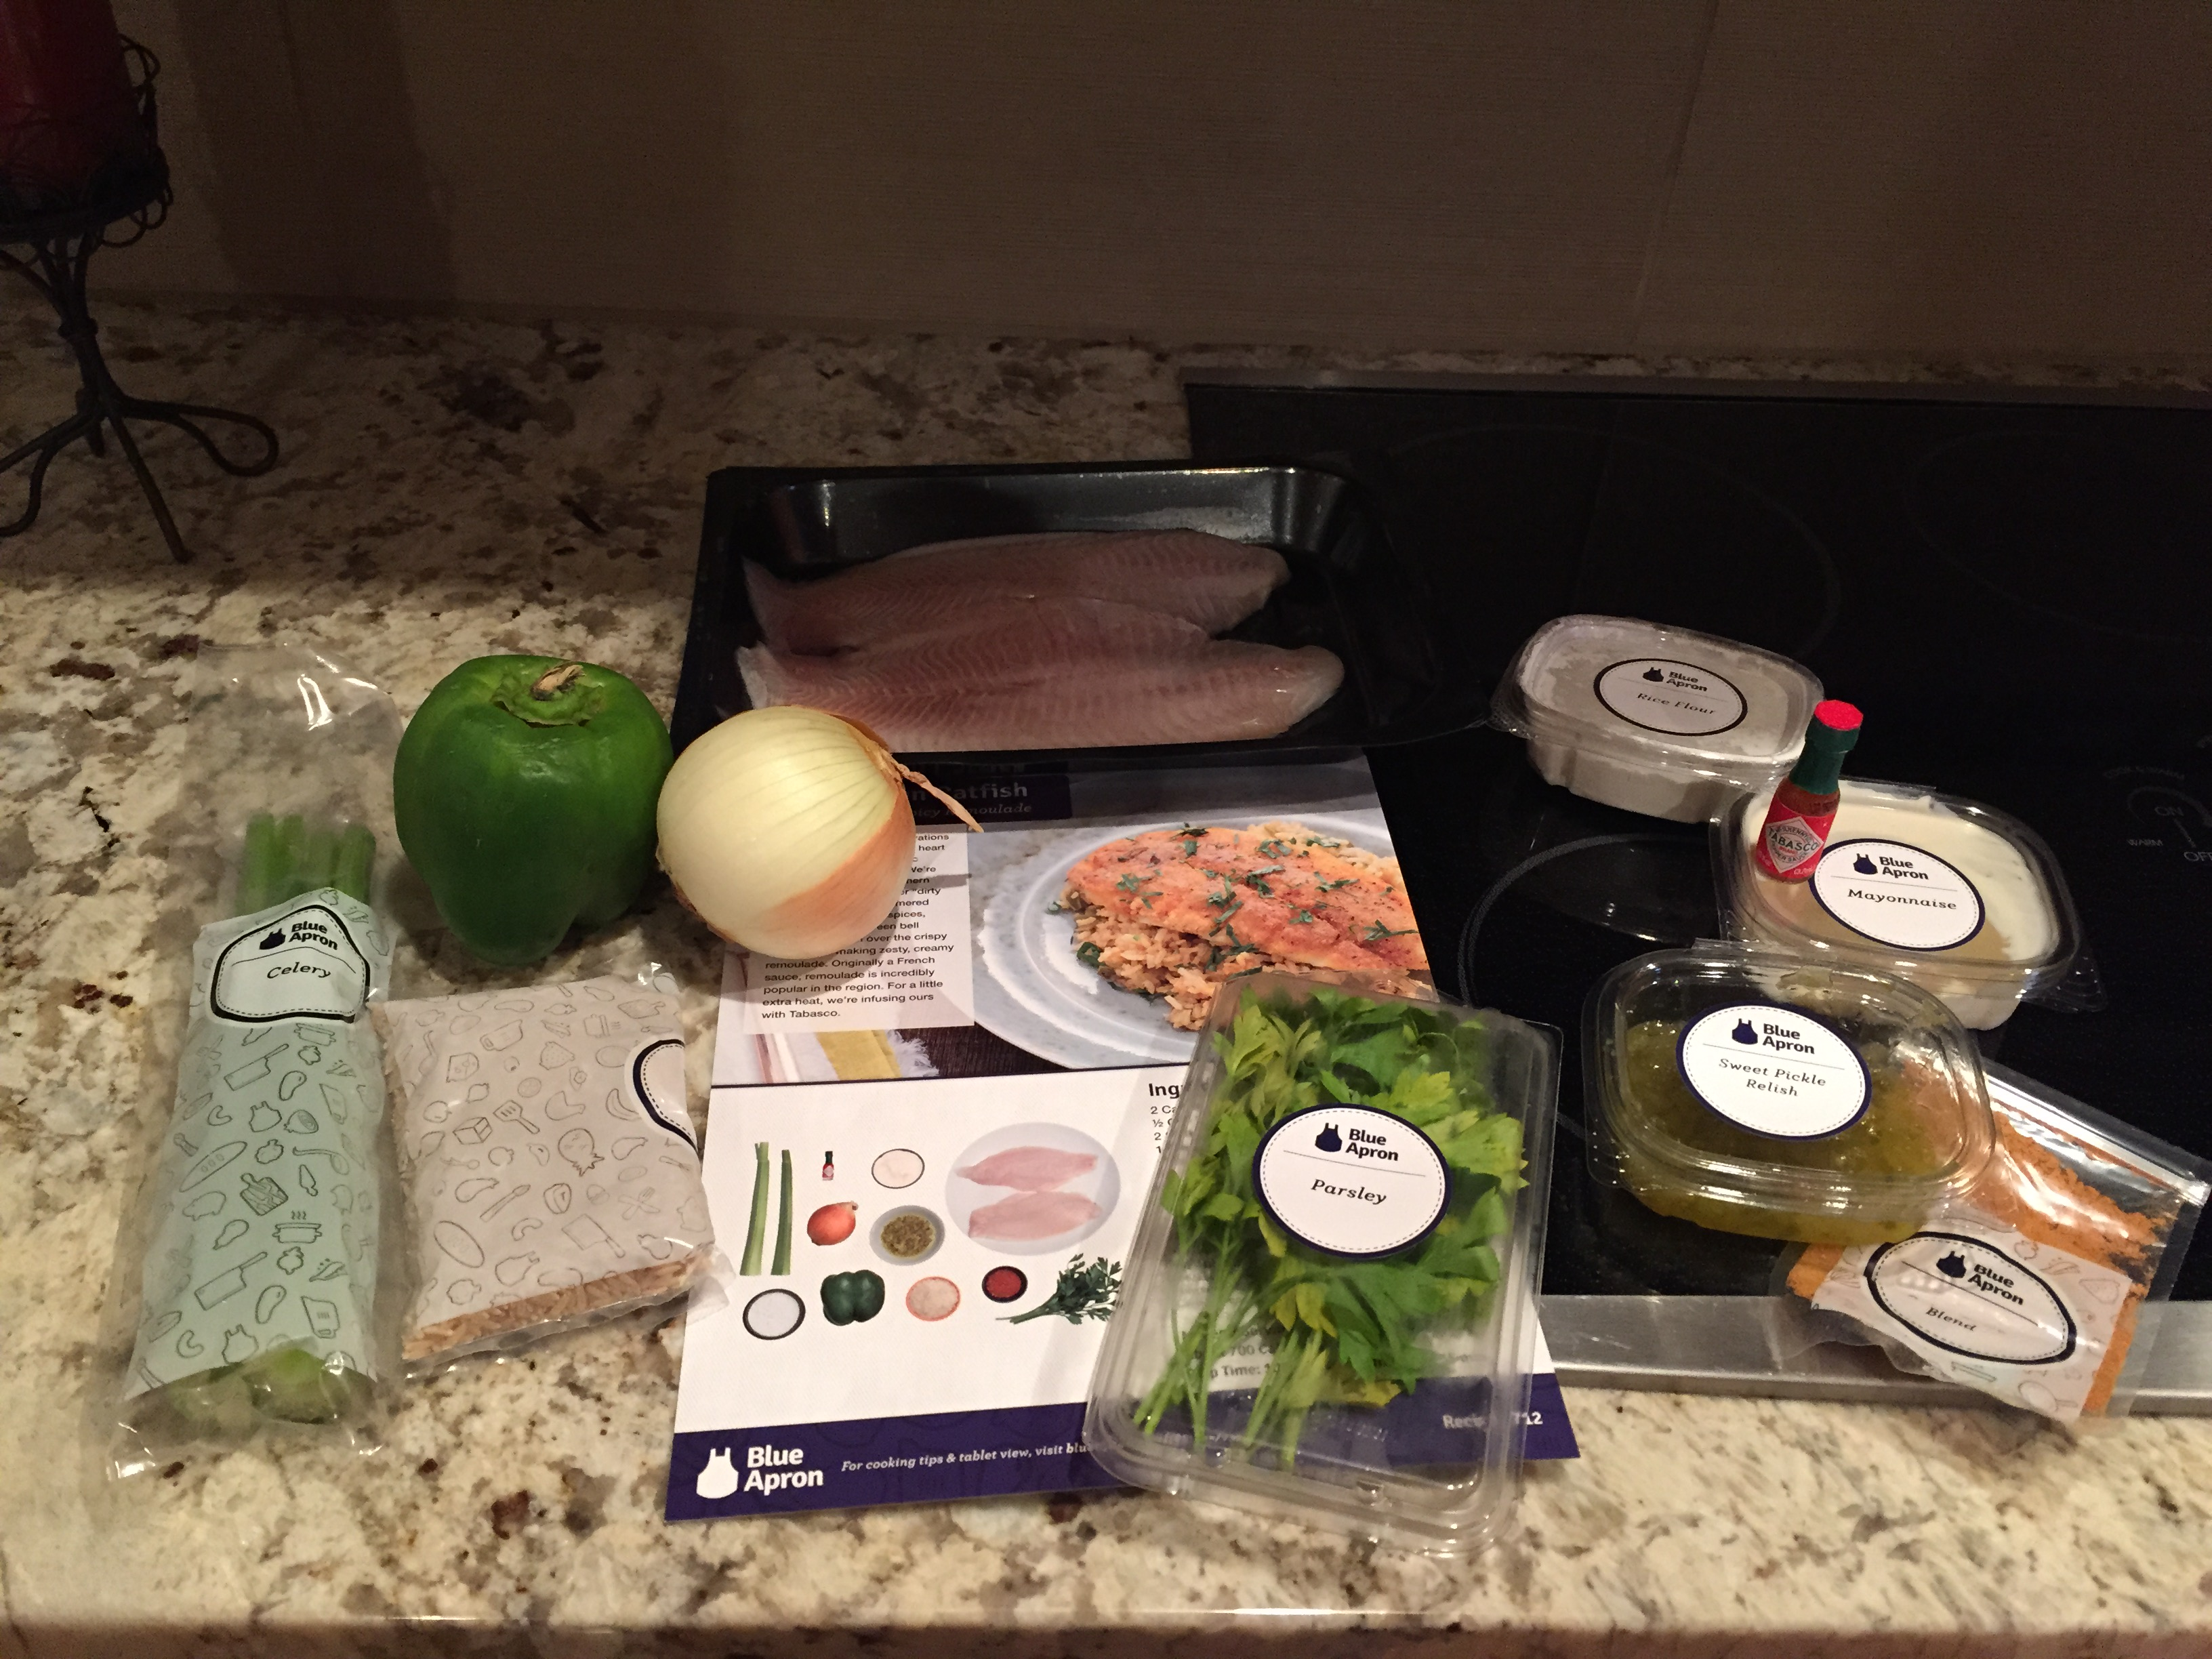 Blue apron fails - Look It S Everything You Need Seriously Everything And It S So Pretty And